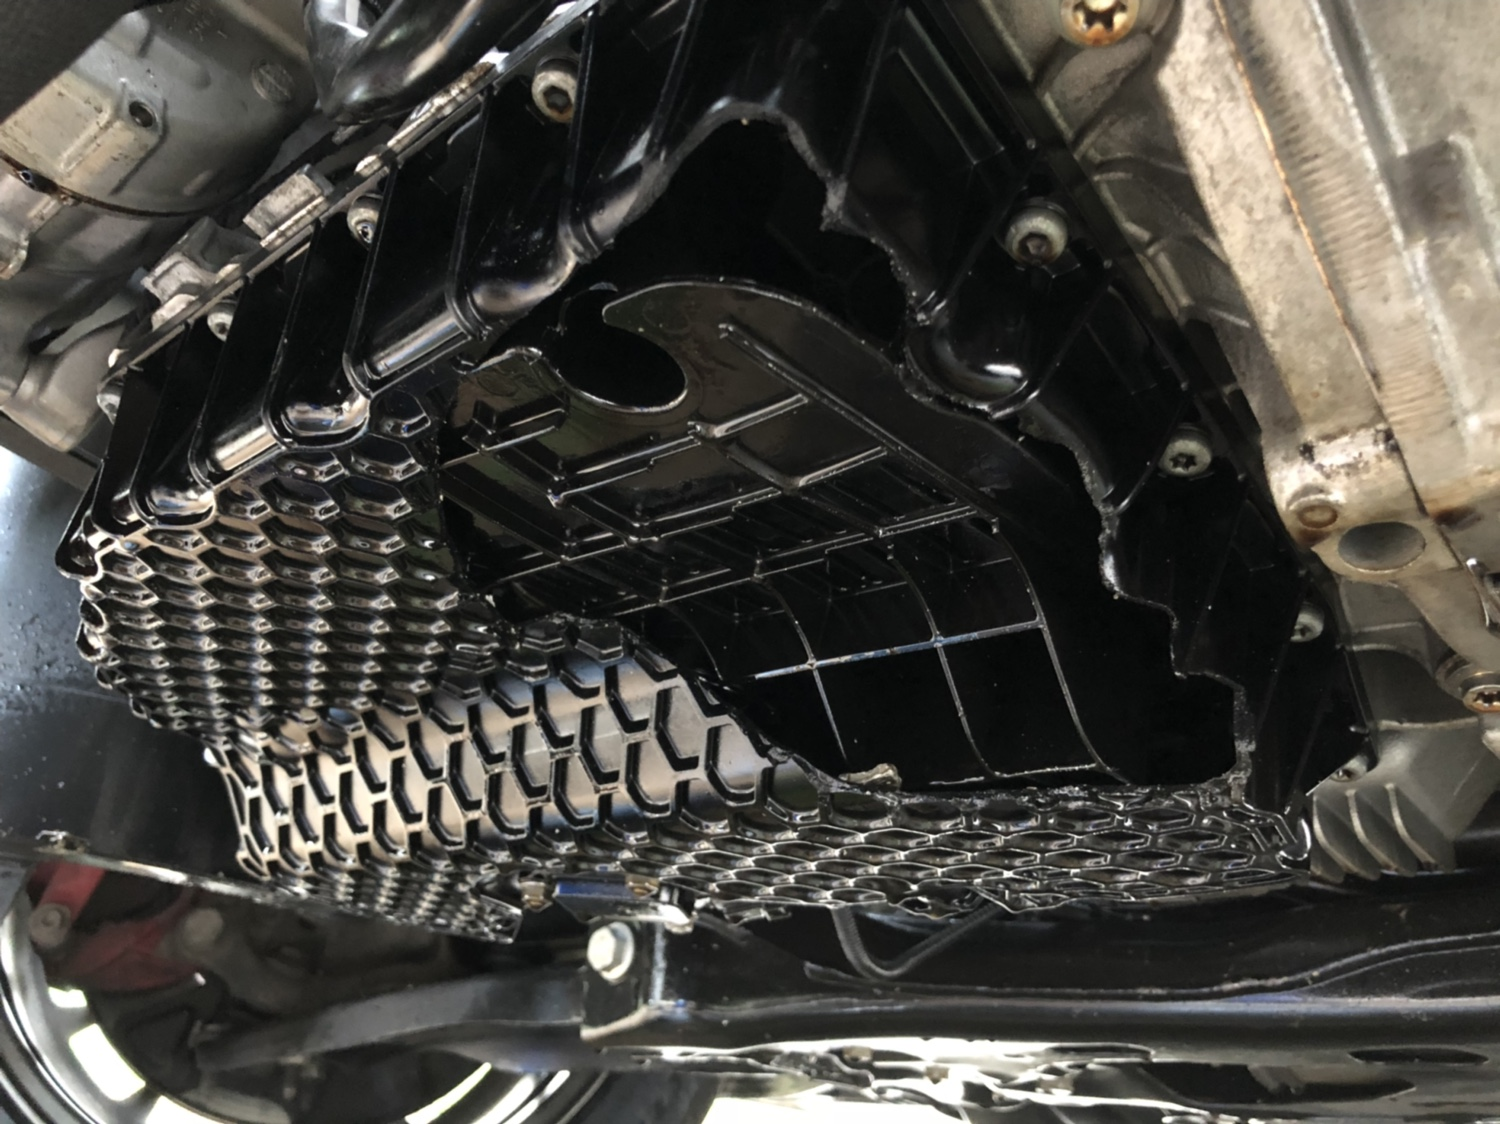 Stealthy is38 install - Page 30 - GOLFMK7 - VW GTI MKVII